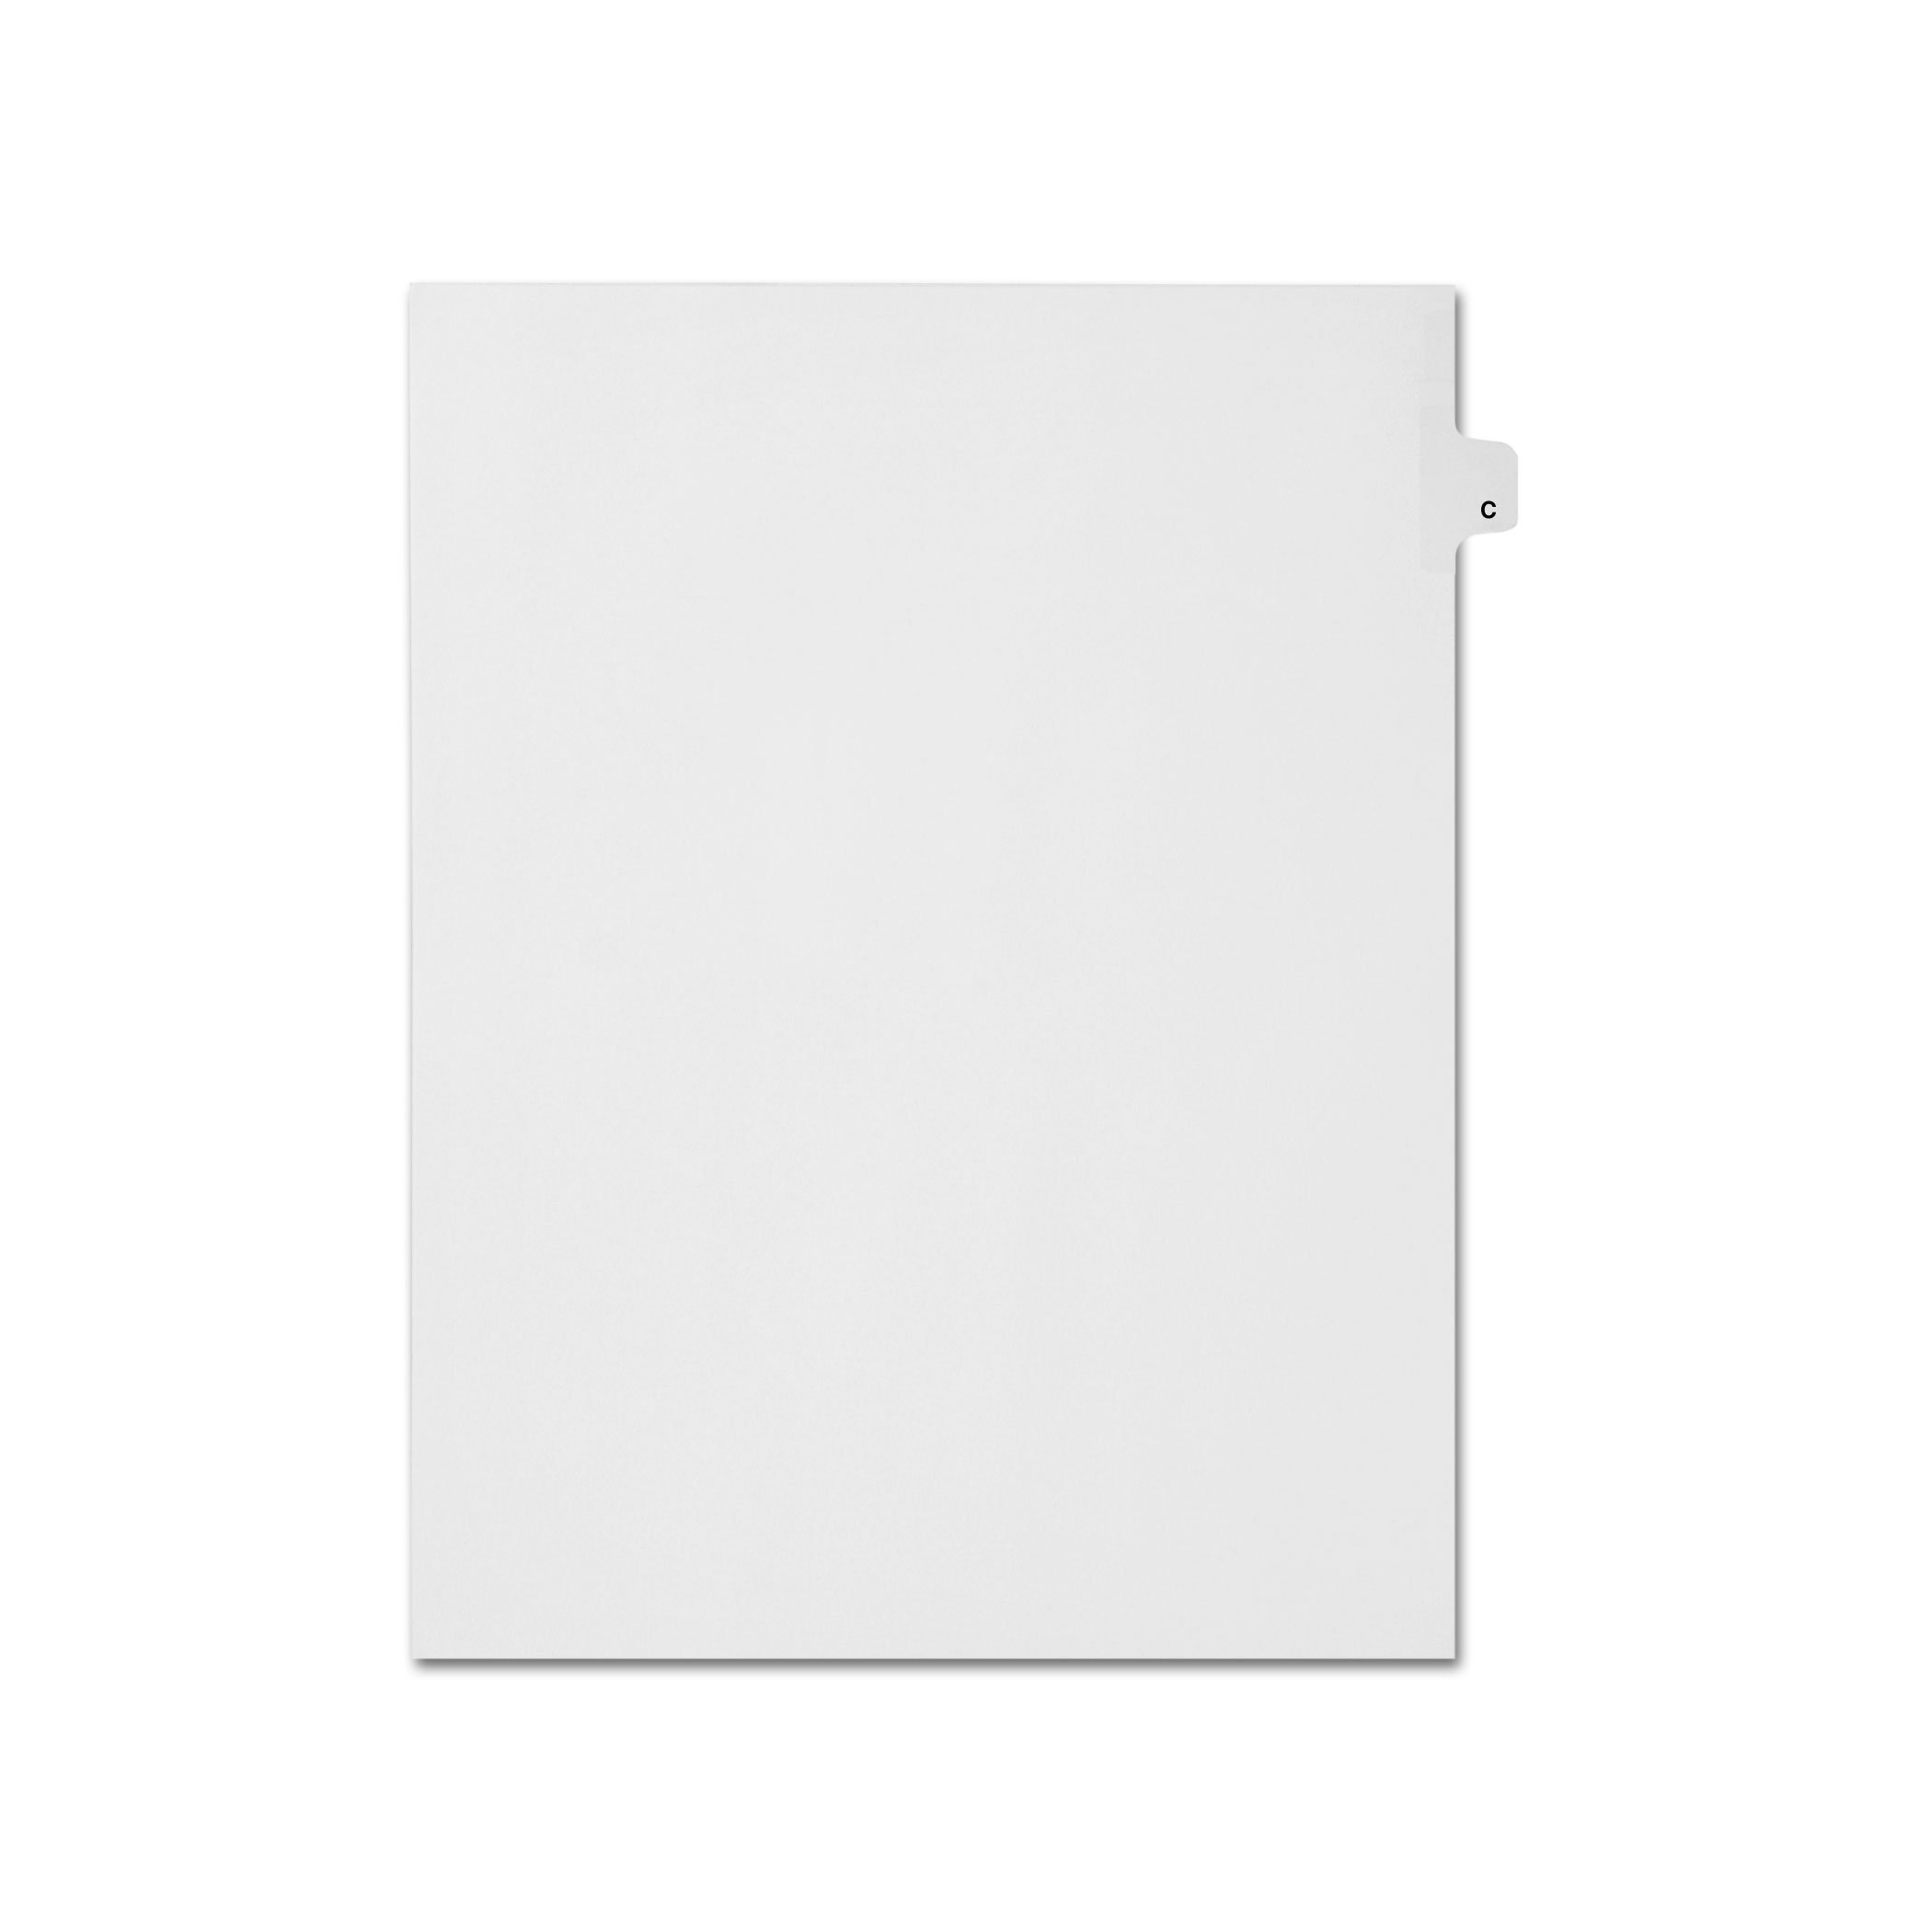 AMZfiling Individual Legal Index Tab Dividers, Compatible with Avery- Printed C, Letter Size, White, Side Tabs, Position 3 (25 Sheets/pkg)